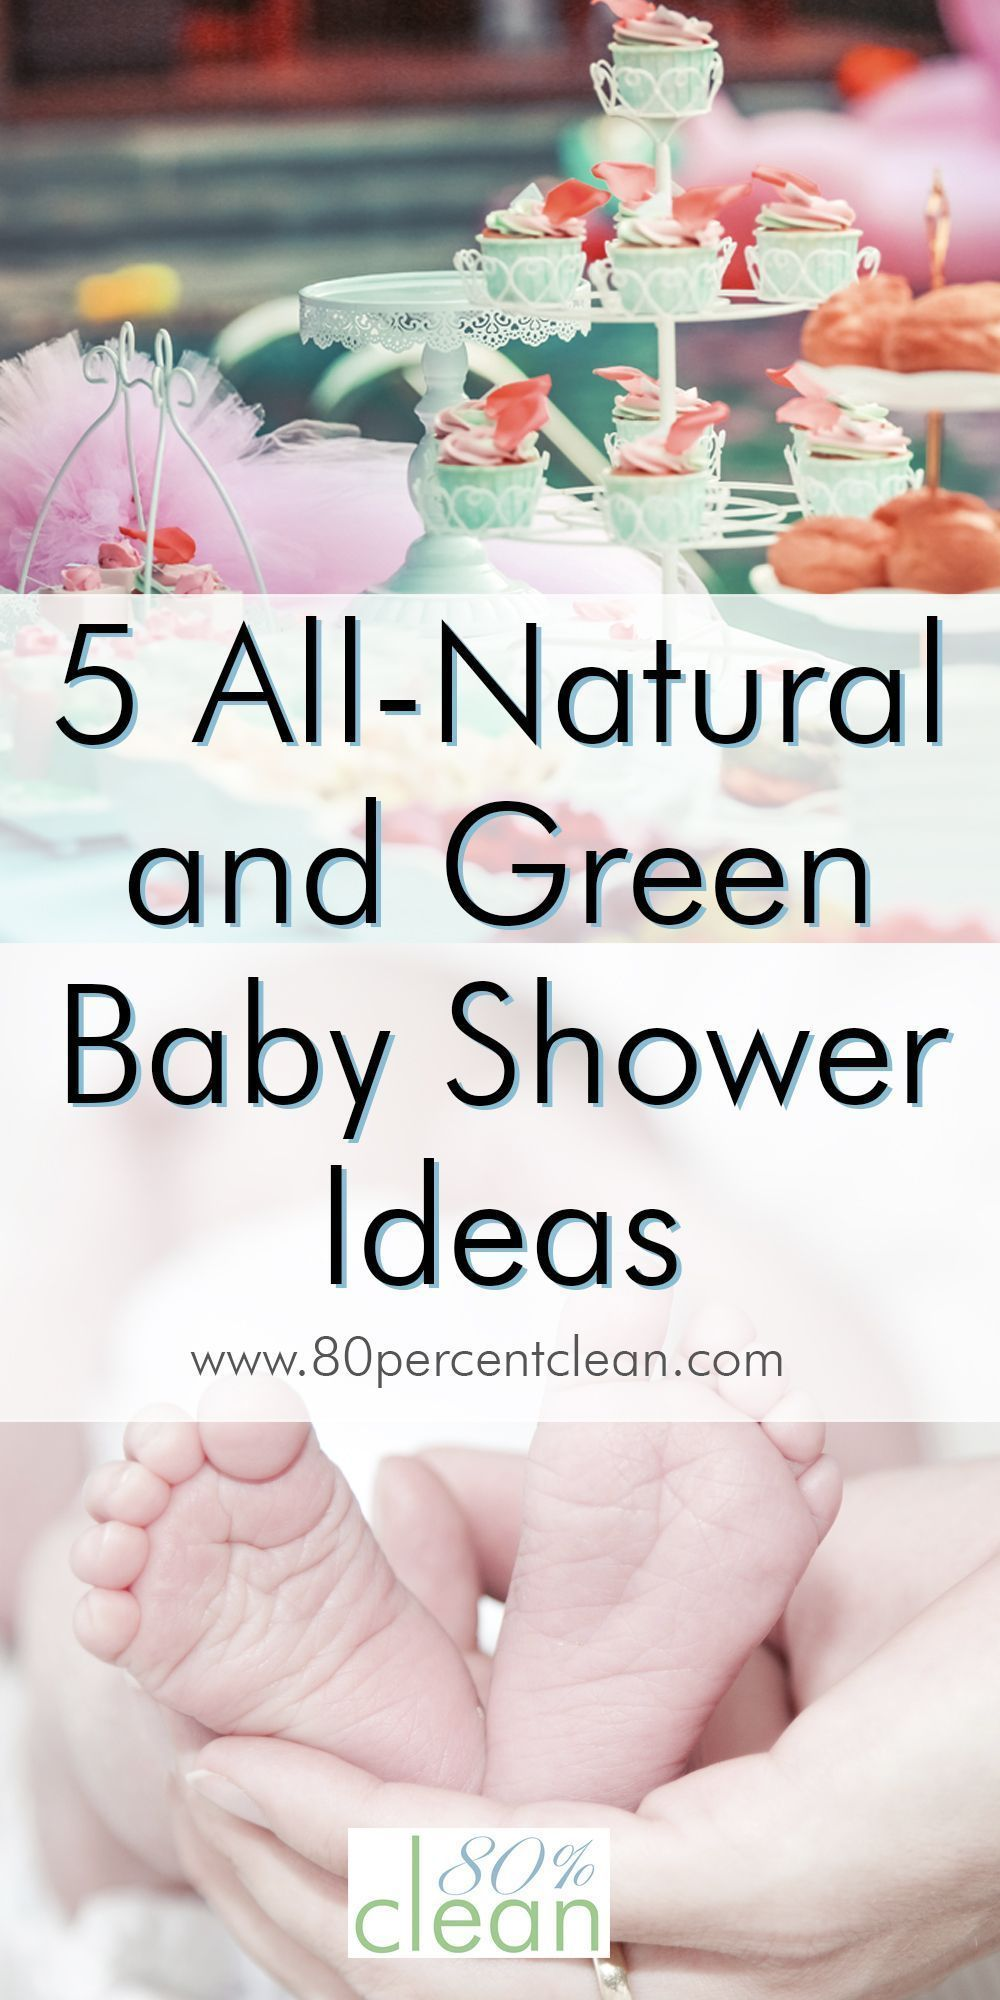 5 All-Natural and Green Baby Shower Ideas  80% Clean_Clean Living_Clean Eating #AllNatural #Baby #CleanClean #Eating #eco friendly swaps #green #Ideas #LivingClean #Shower